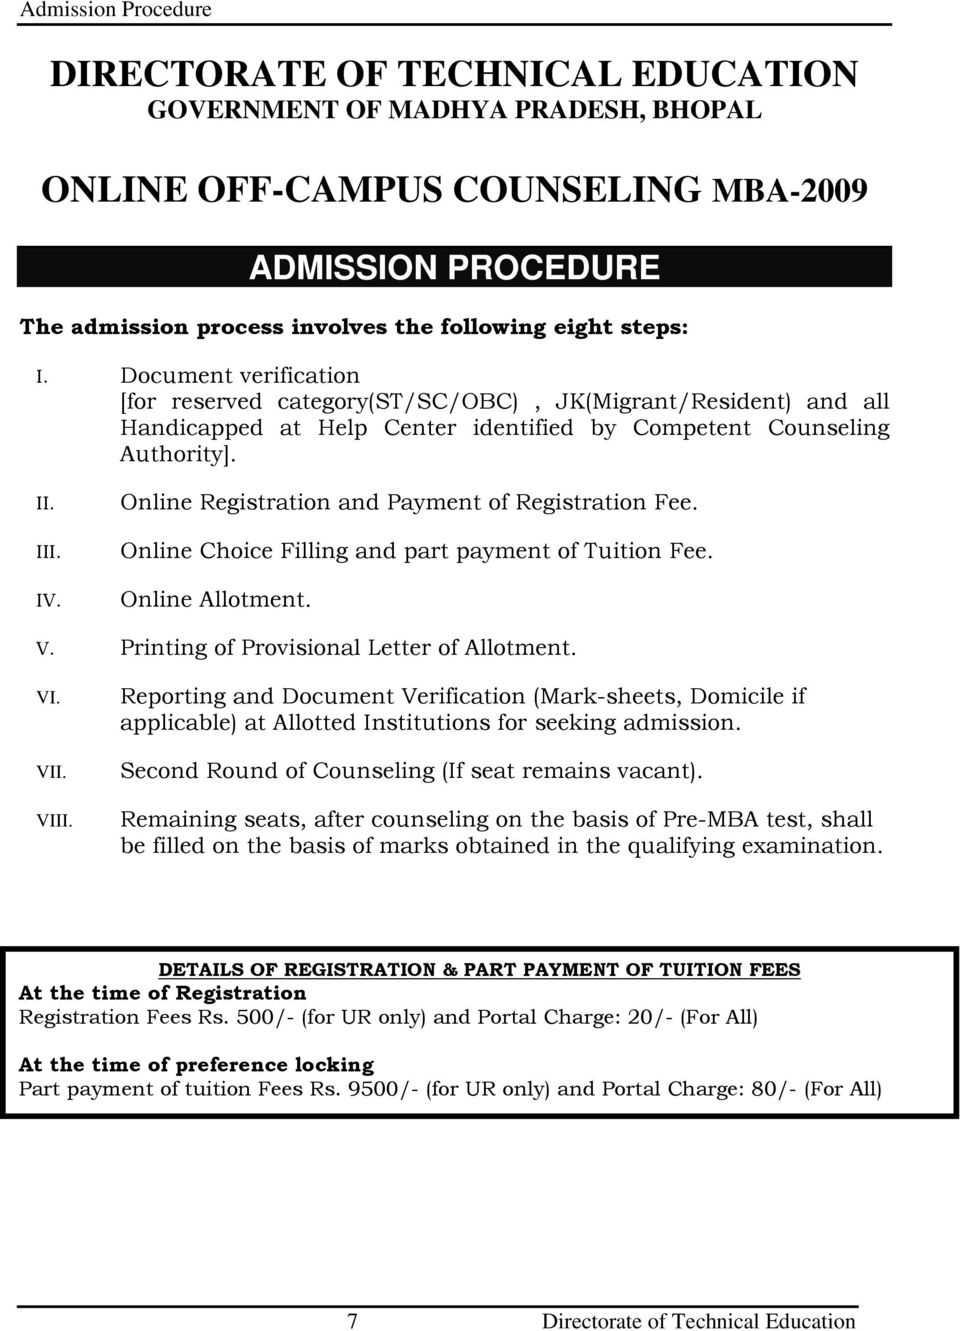 Online Registration and Payment of Registration Fee. Online Choice Filling and part payment of Tuition Fee. Online Allotment. V. Printing of Provisional Letter of Allotment. VI. VII. VIII.